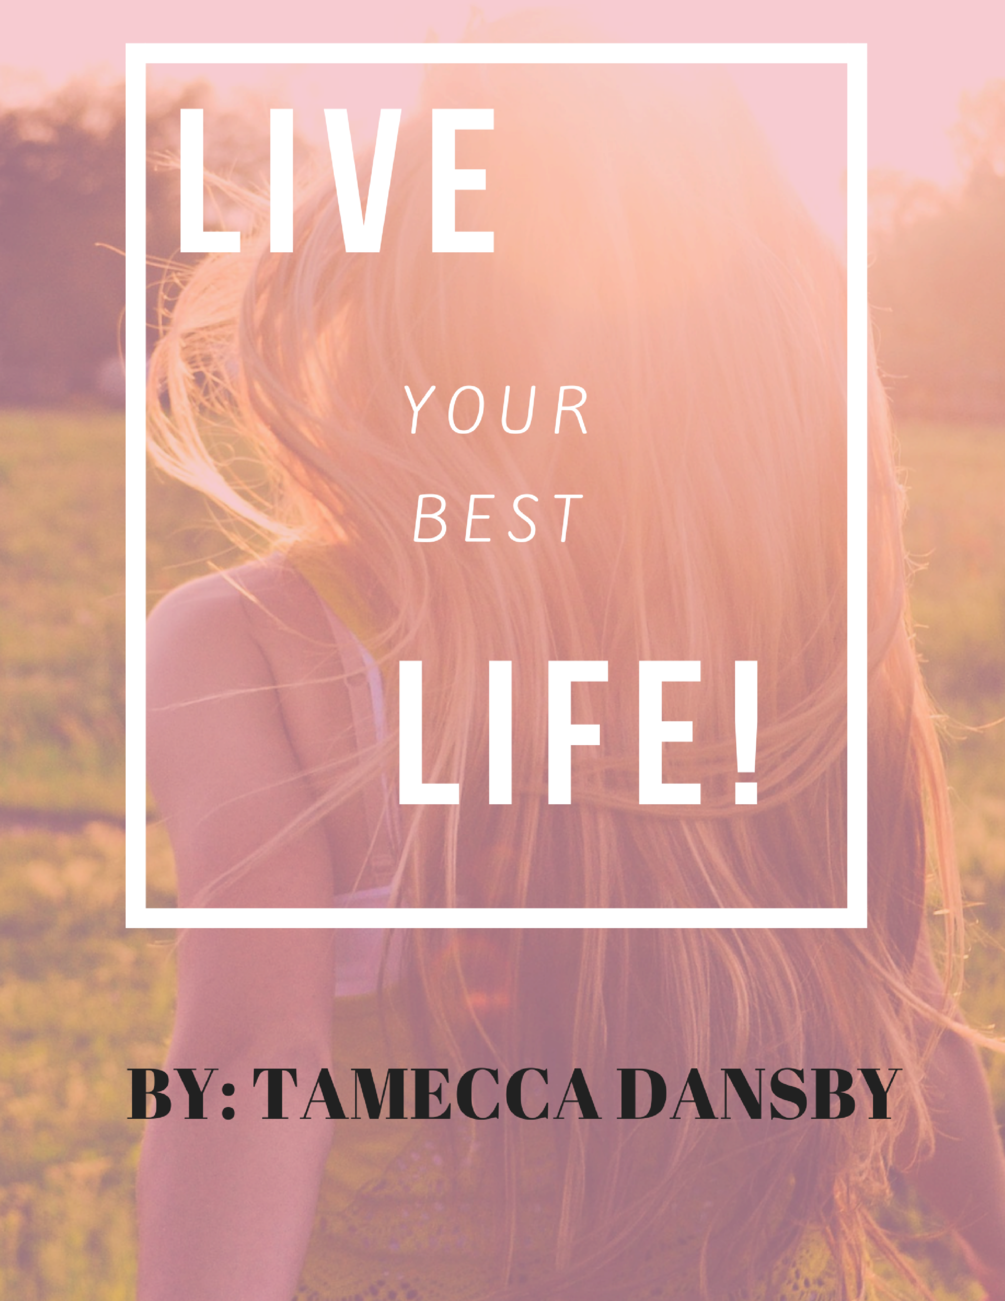 Live Your Best Life Journal - $9.95 - The journal to living your best life provides you with three major things that you must have, when you begin the journey of living your best life & provides you with a place to record your current truth & your progress. Let's get you on that journey! It's not too late!